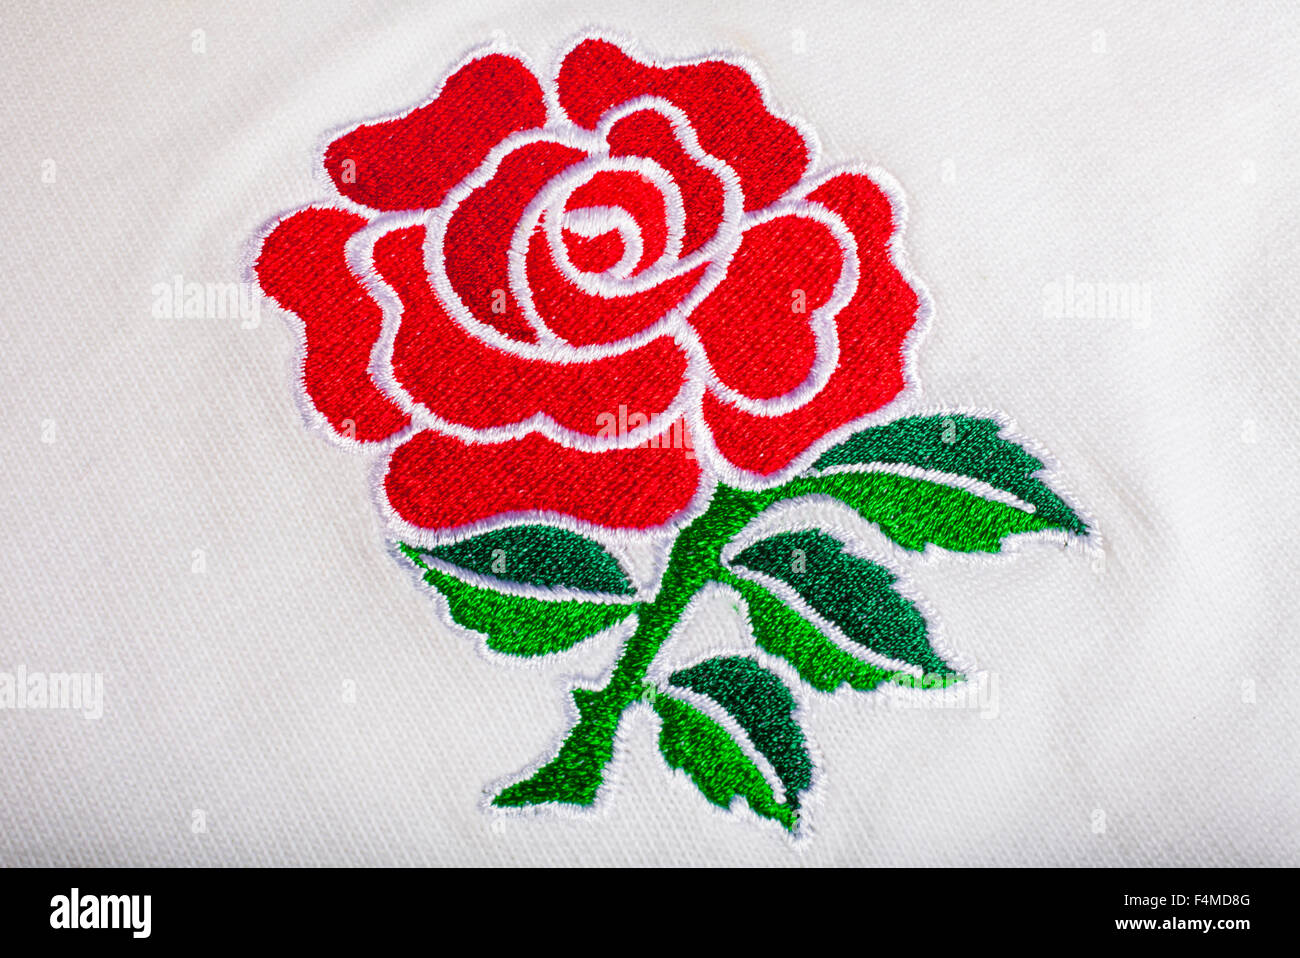 LONDON, UK - OCTOBER 19TH 2015: The red rose embroidered on an England Rugby Shirt, on 19th October 2015. - Stock Image